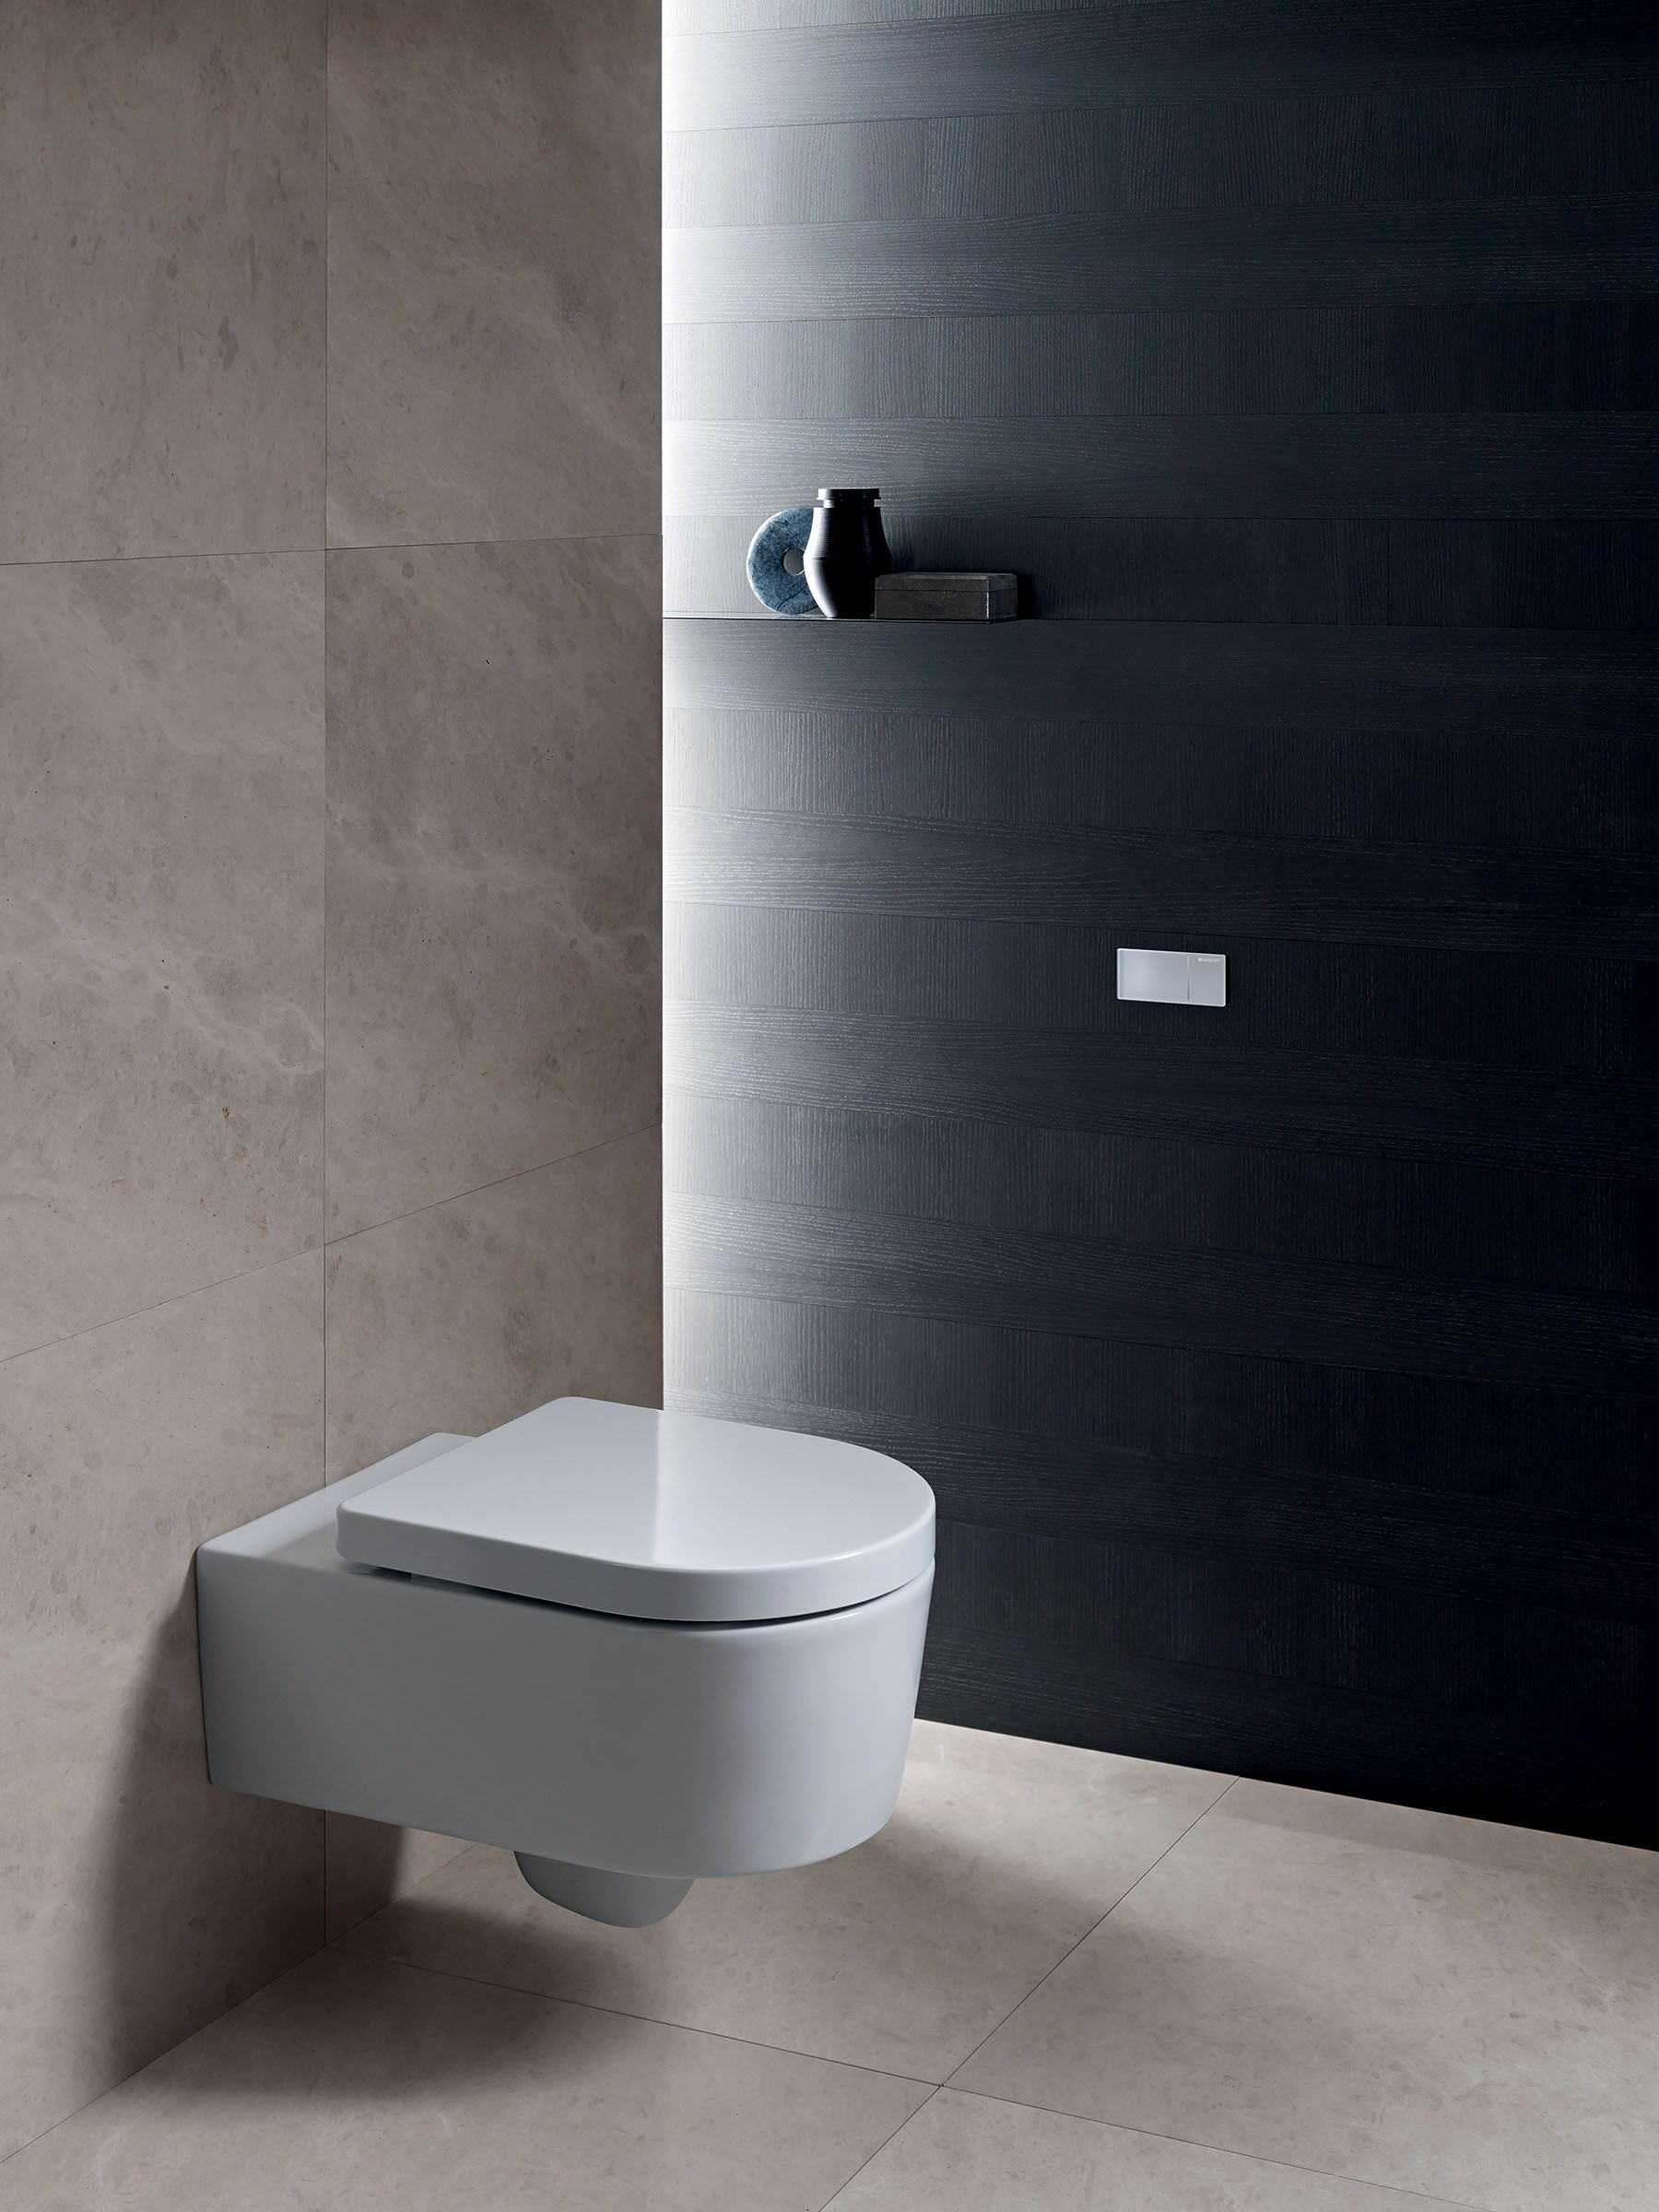 The Geberit System Opens Wall And Floor E For New Design Possibilities Why Shouldn T Everyone Have A Hint Of Luxury In Their Bathroom